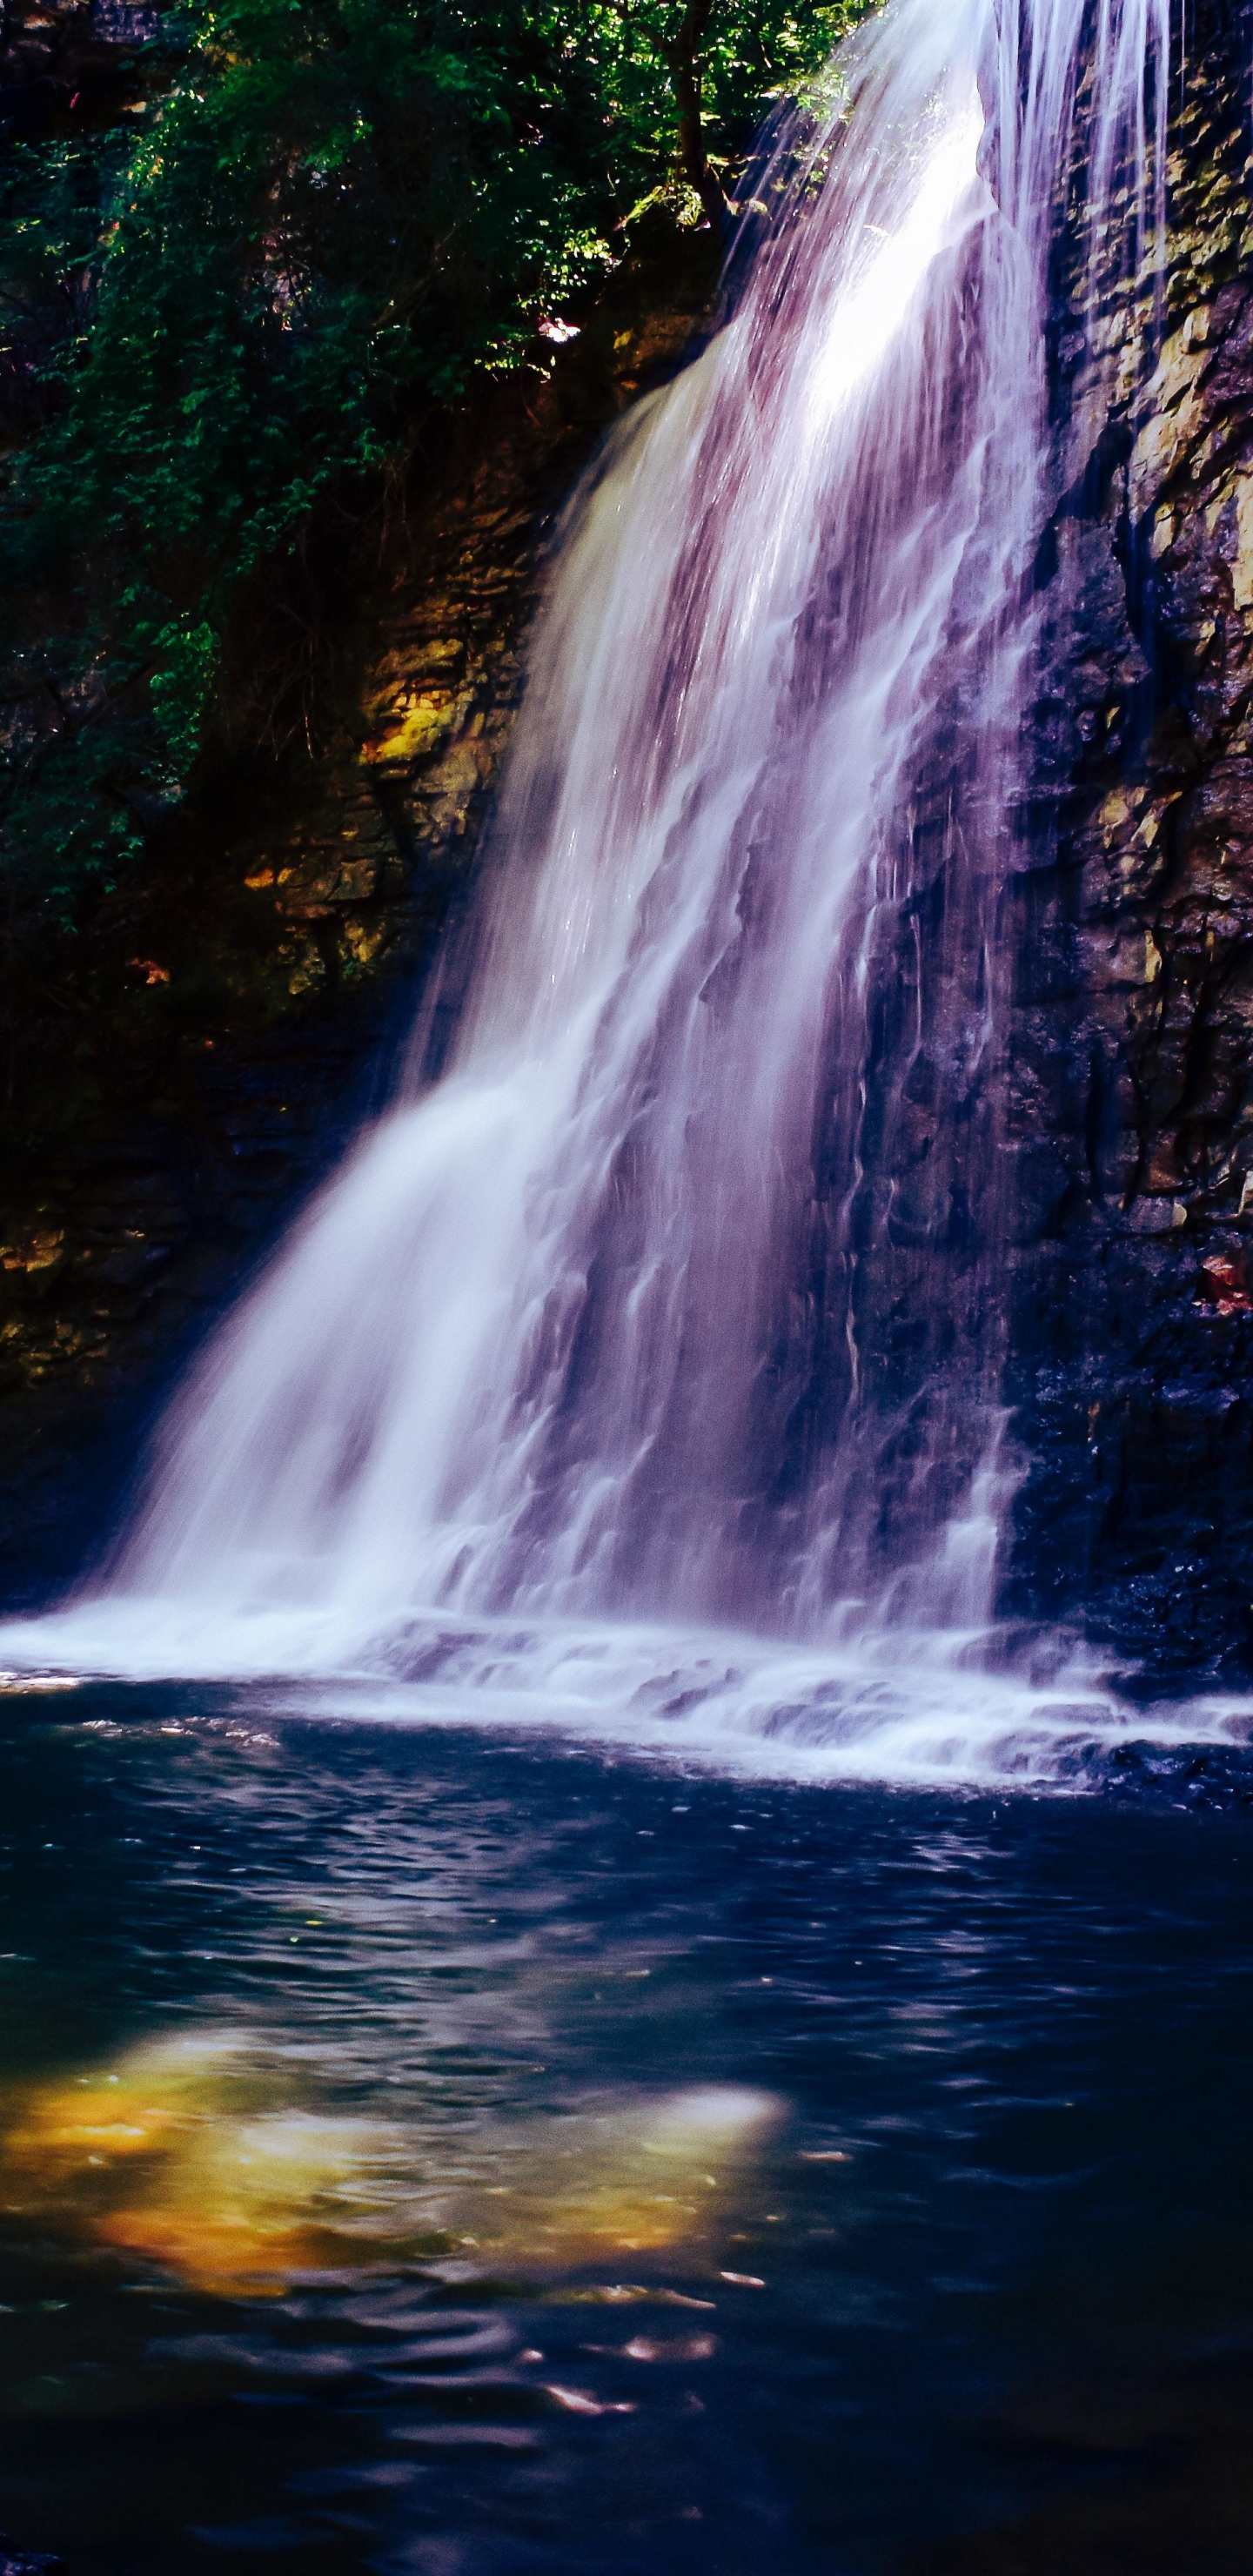 Download 1440x2960 Wallpaper Nature Waterfall Water Current Samsung Galaxy S8 Samsung Galaxy S8 Plus 1440x2960 Hd Image Background 9989